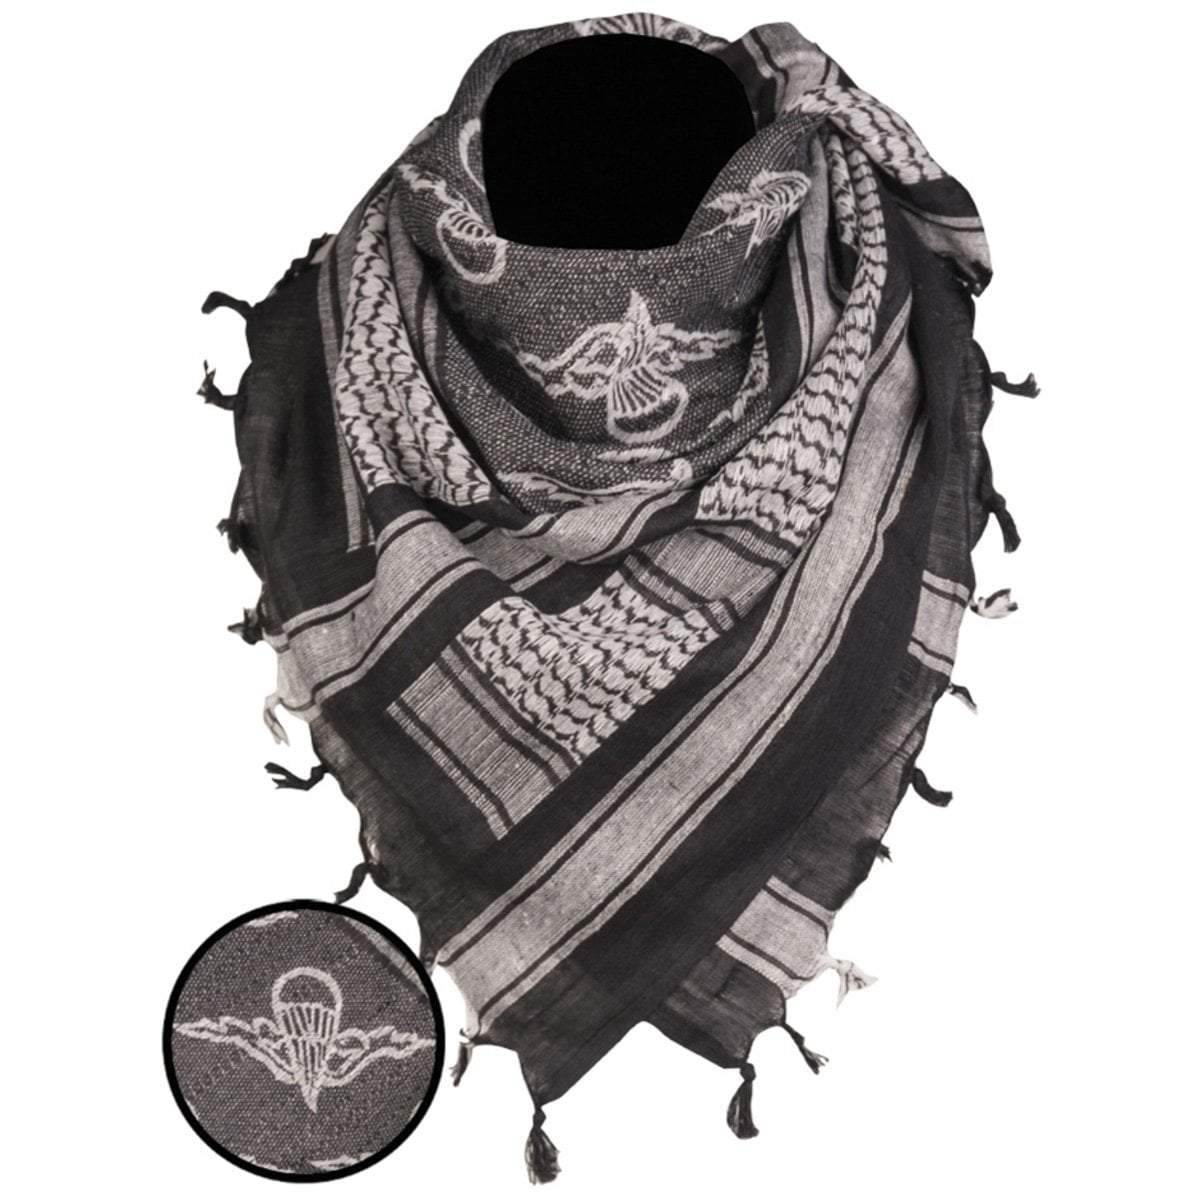 Mil-Tec Paratrooper Shemagh Scarf Black | UKMC Pro